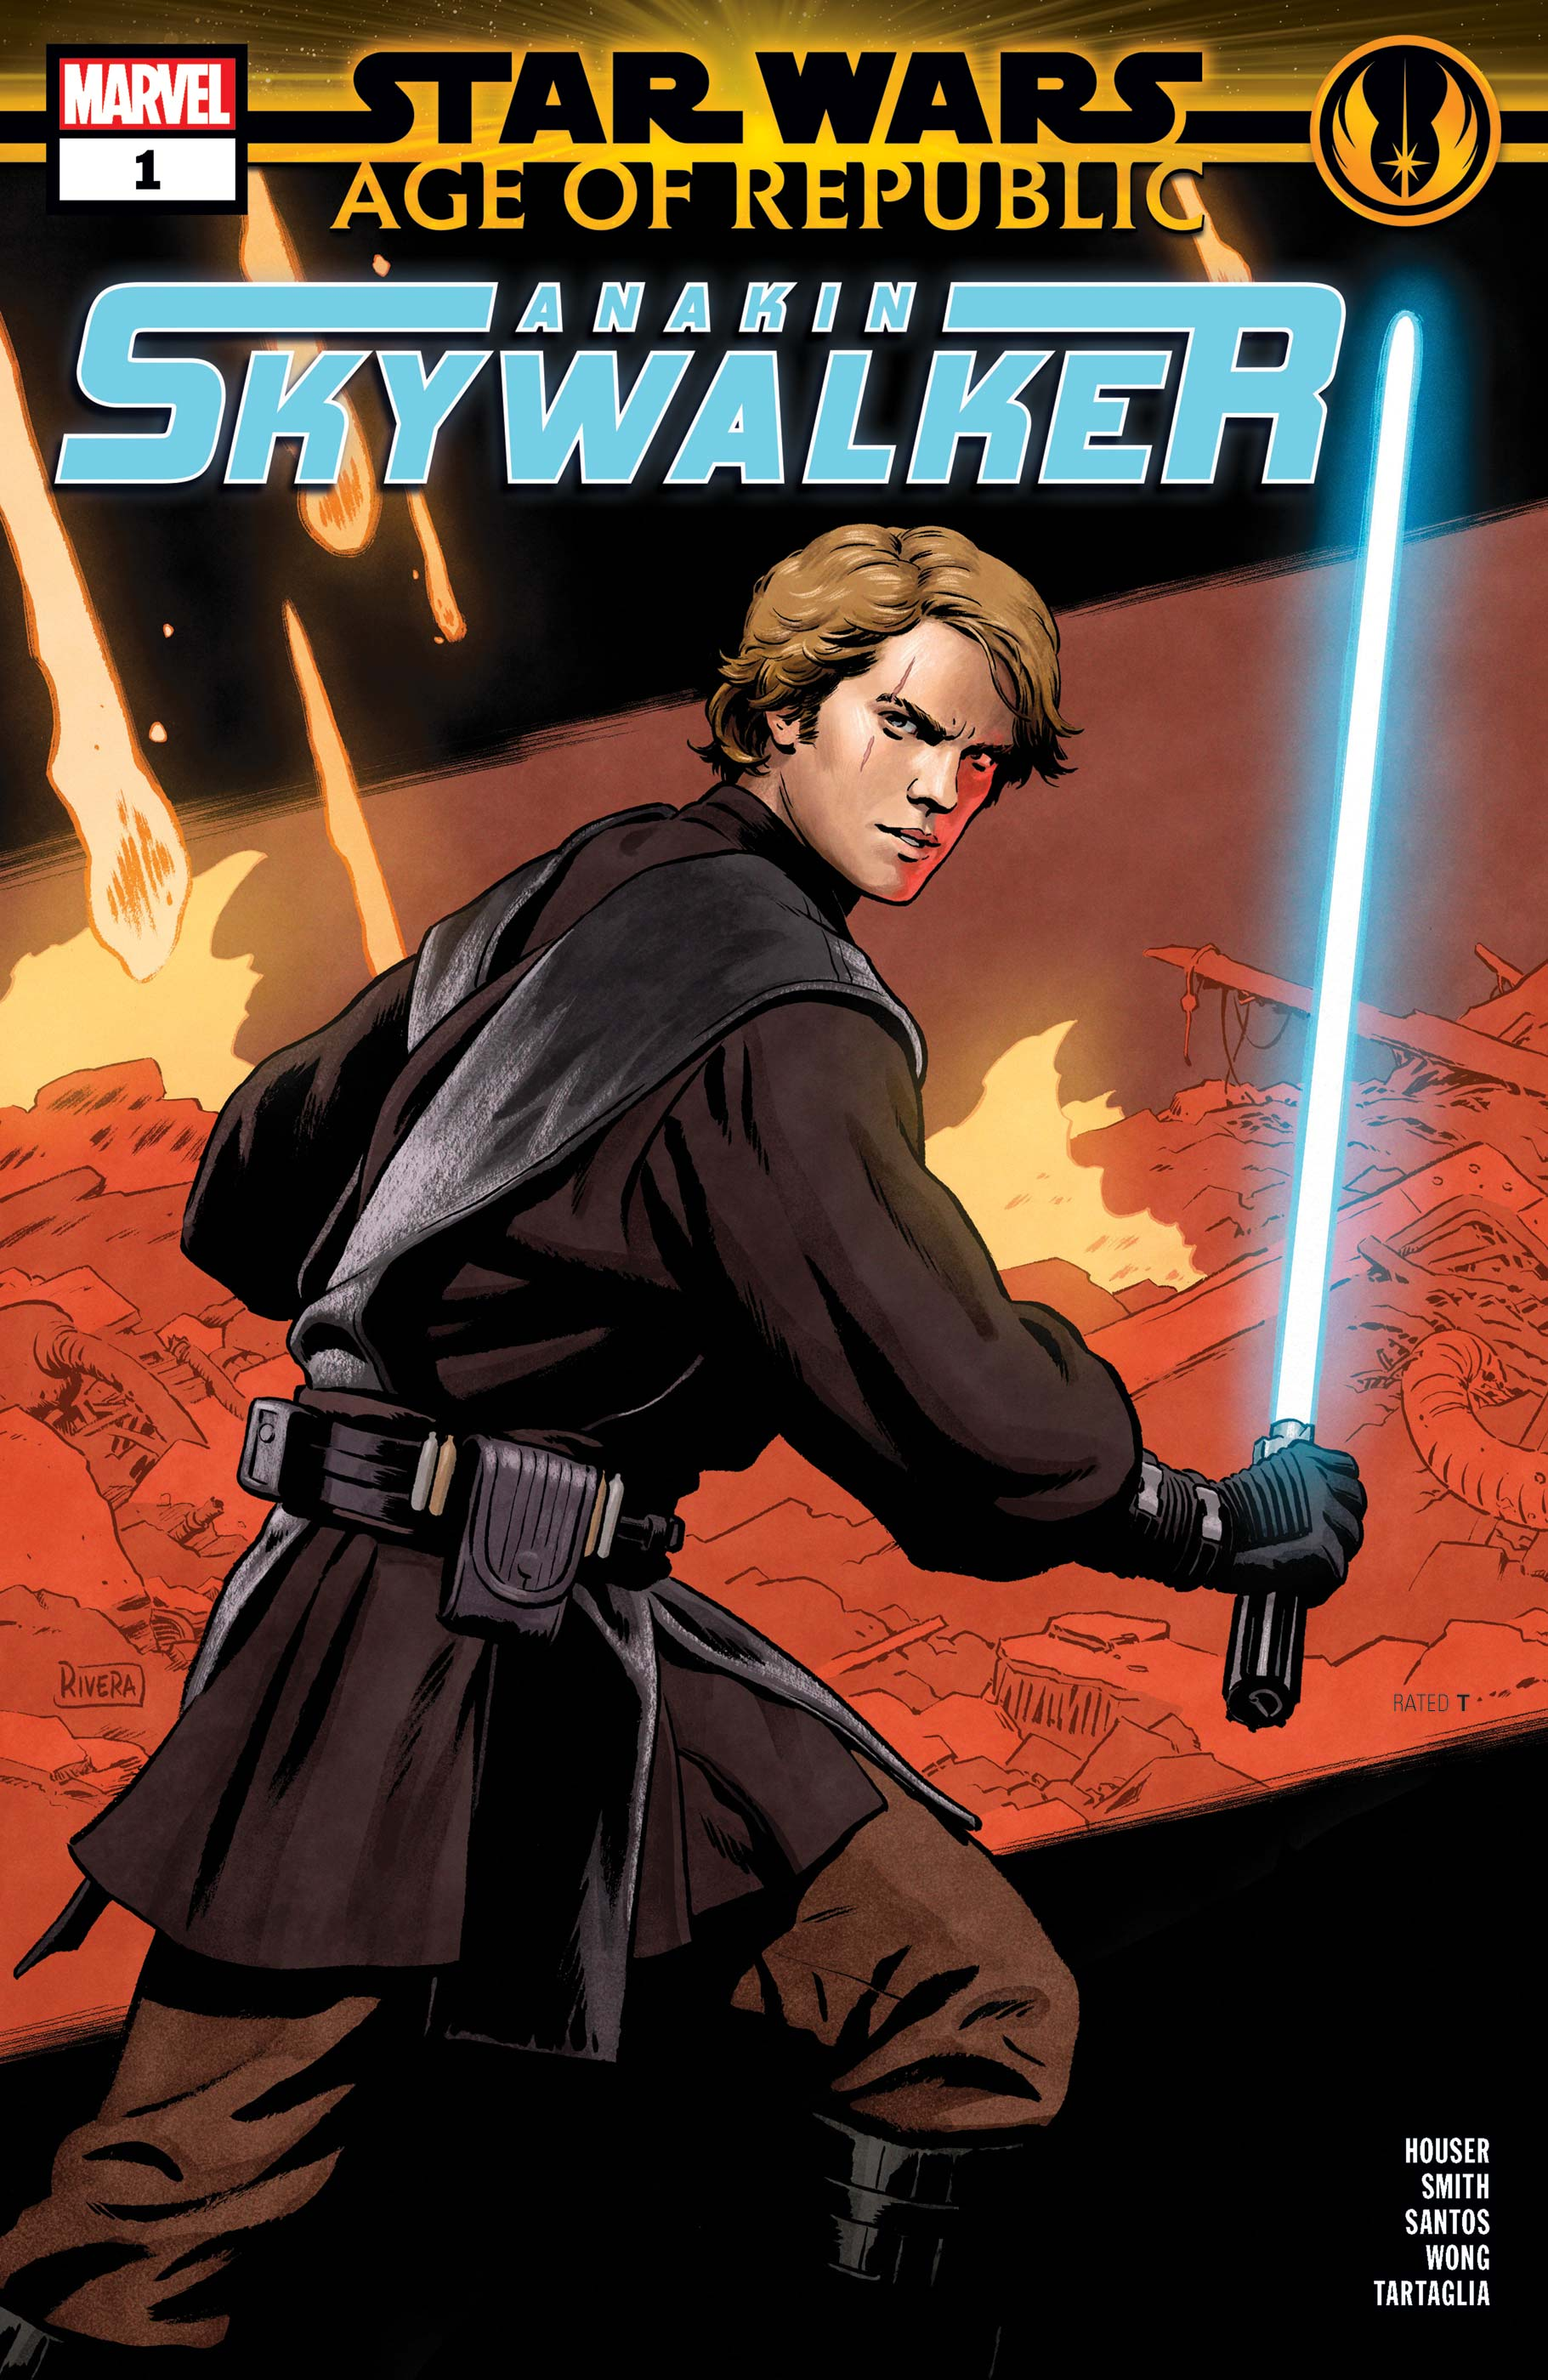 Star Wars: Age Of Republic - Anakin Skywalker (2019) #1 | Comics